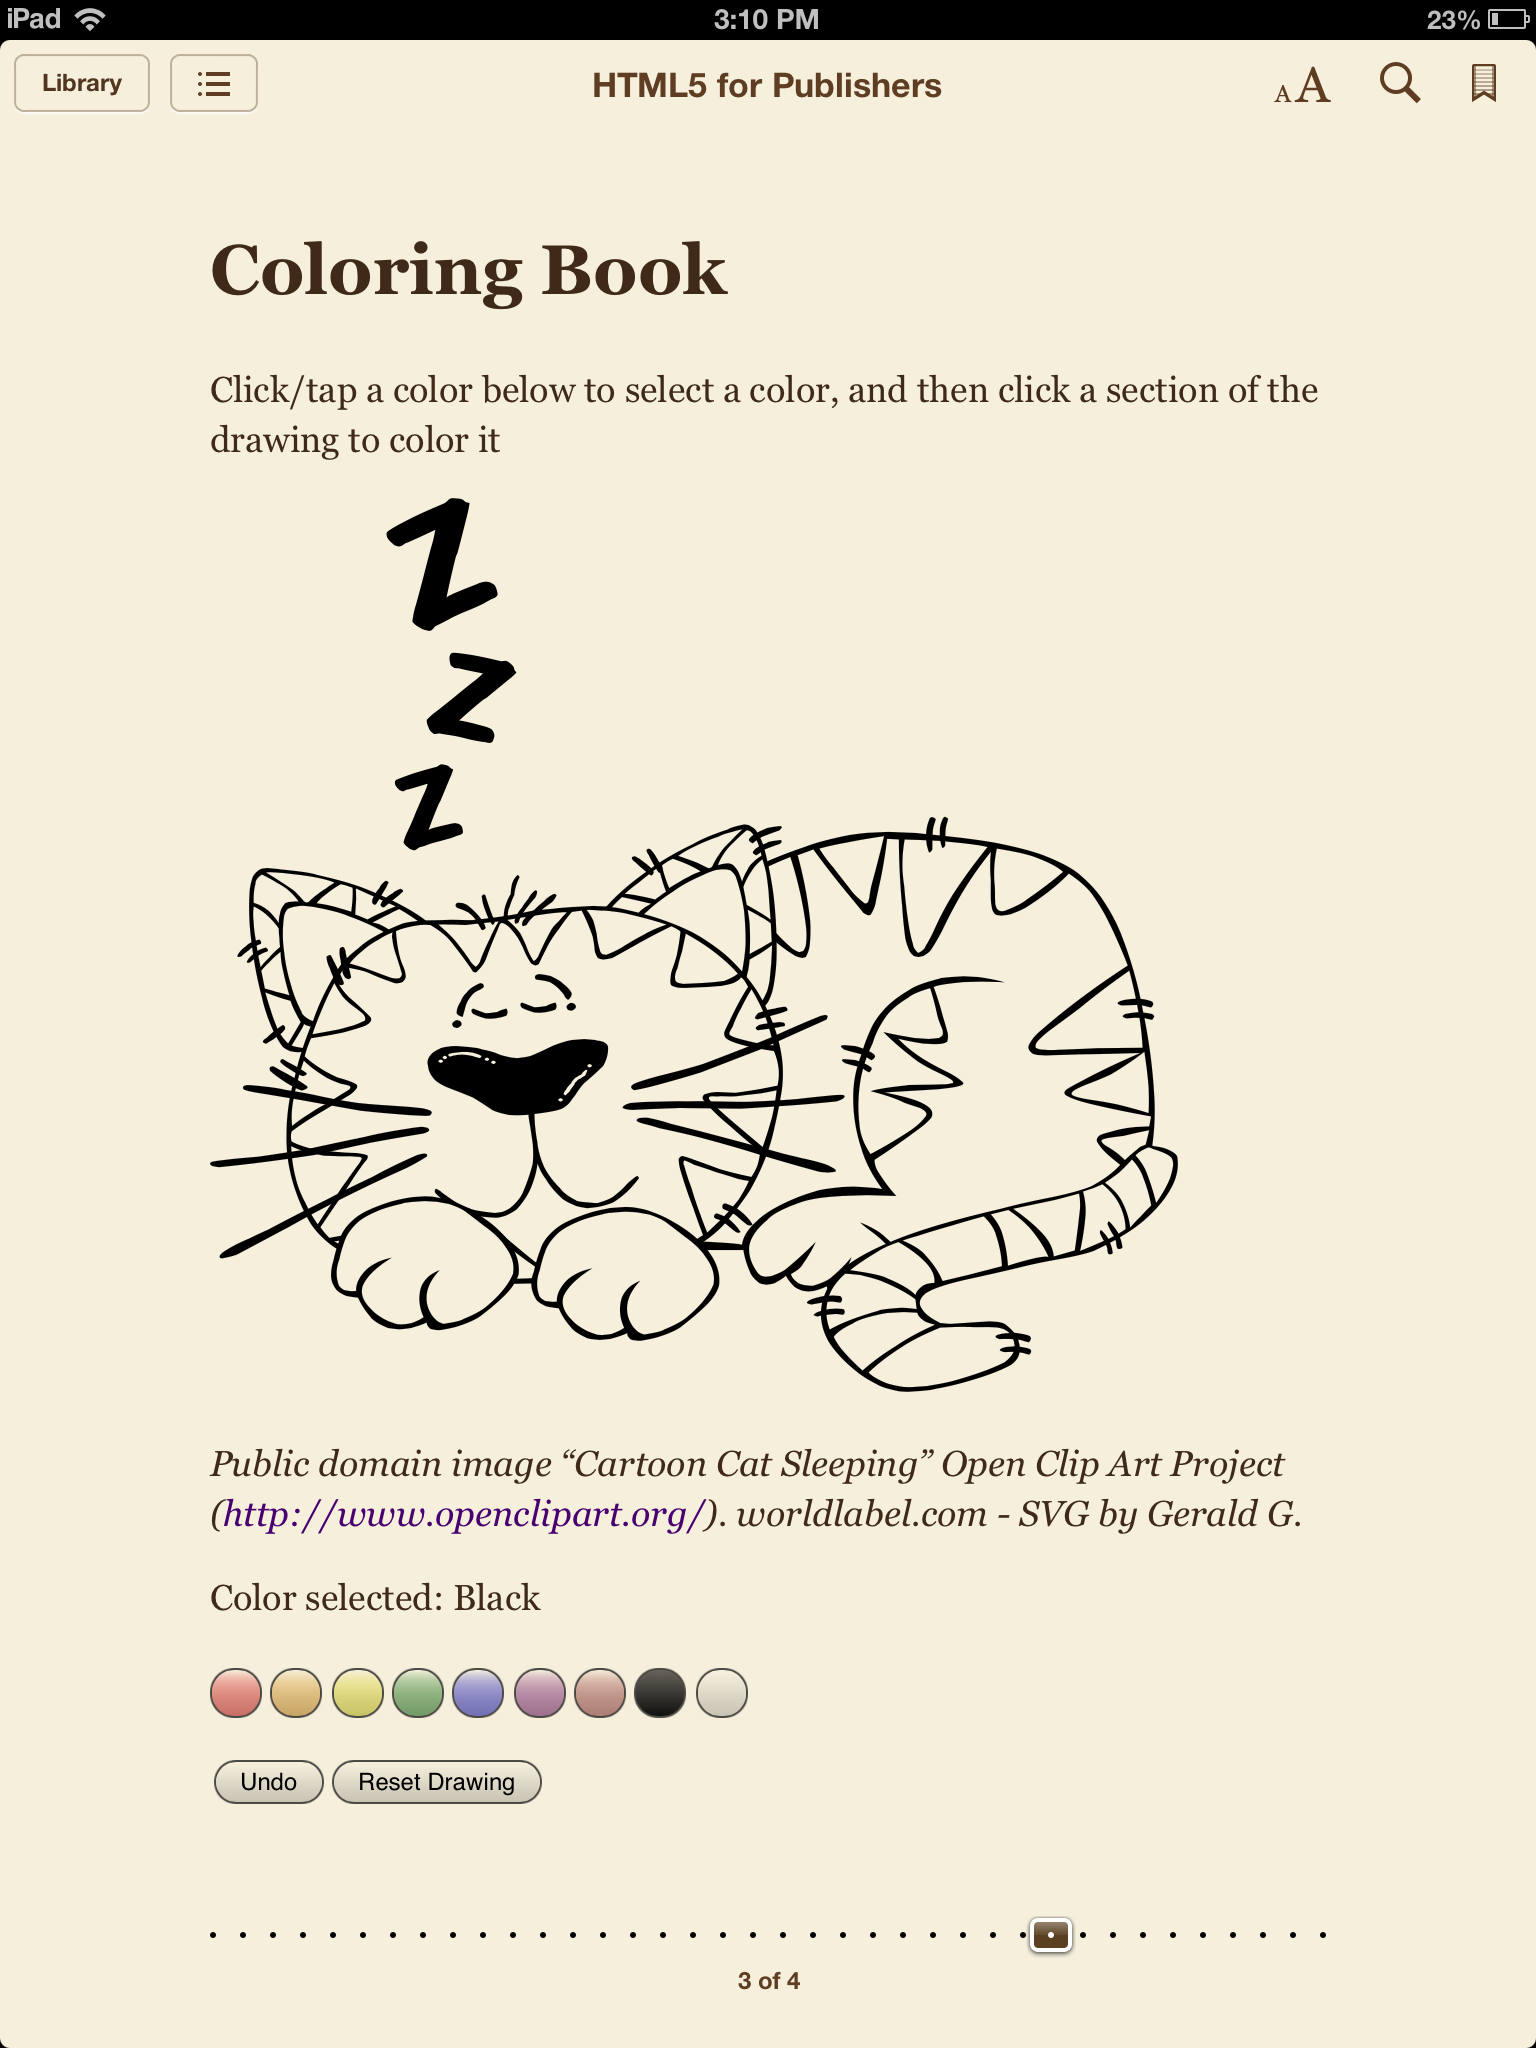 Coloring book html5 - Svg coloring book page in ibooks for ipad